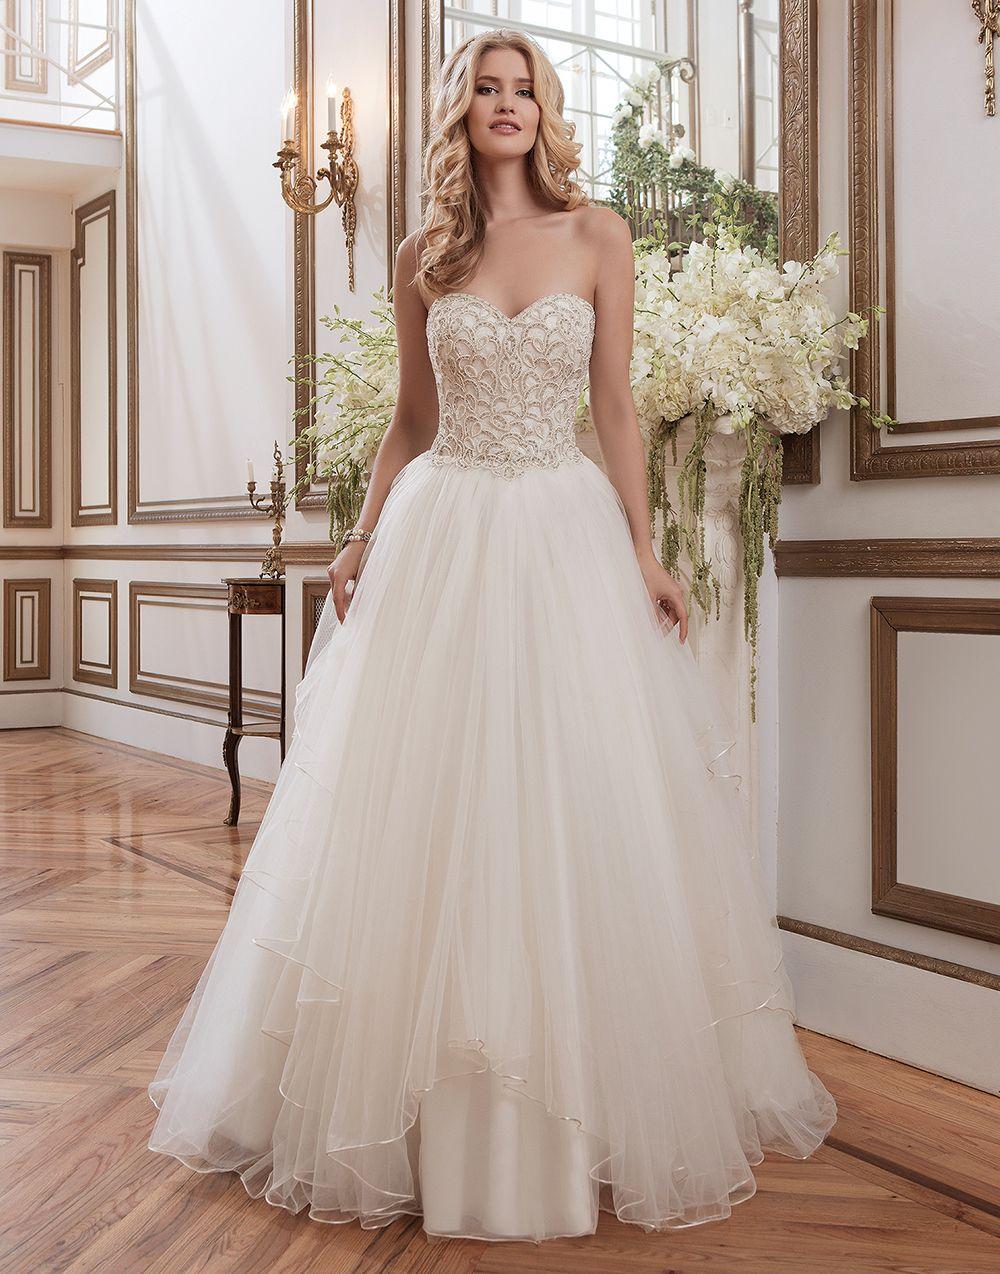 Justin Alexander Wedding Dresses Style 8786 Beaded Venice Lace And Tulle Ball Gown Accentuated By A Sweetheart Neckline